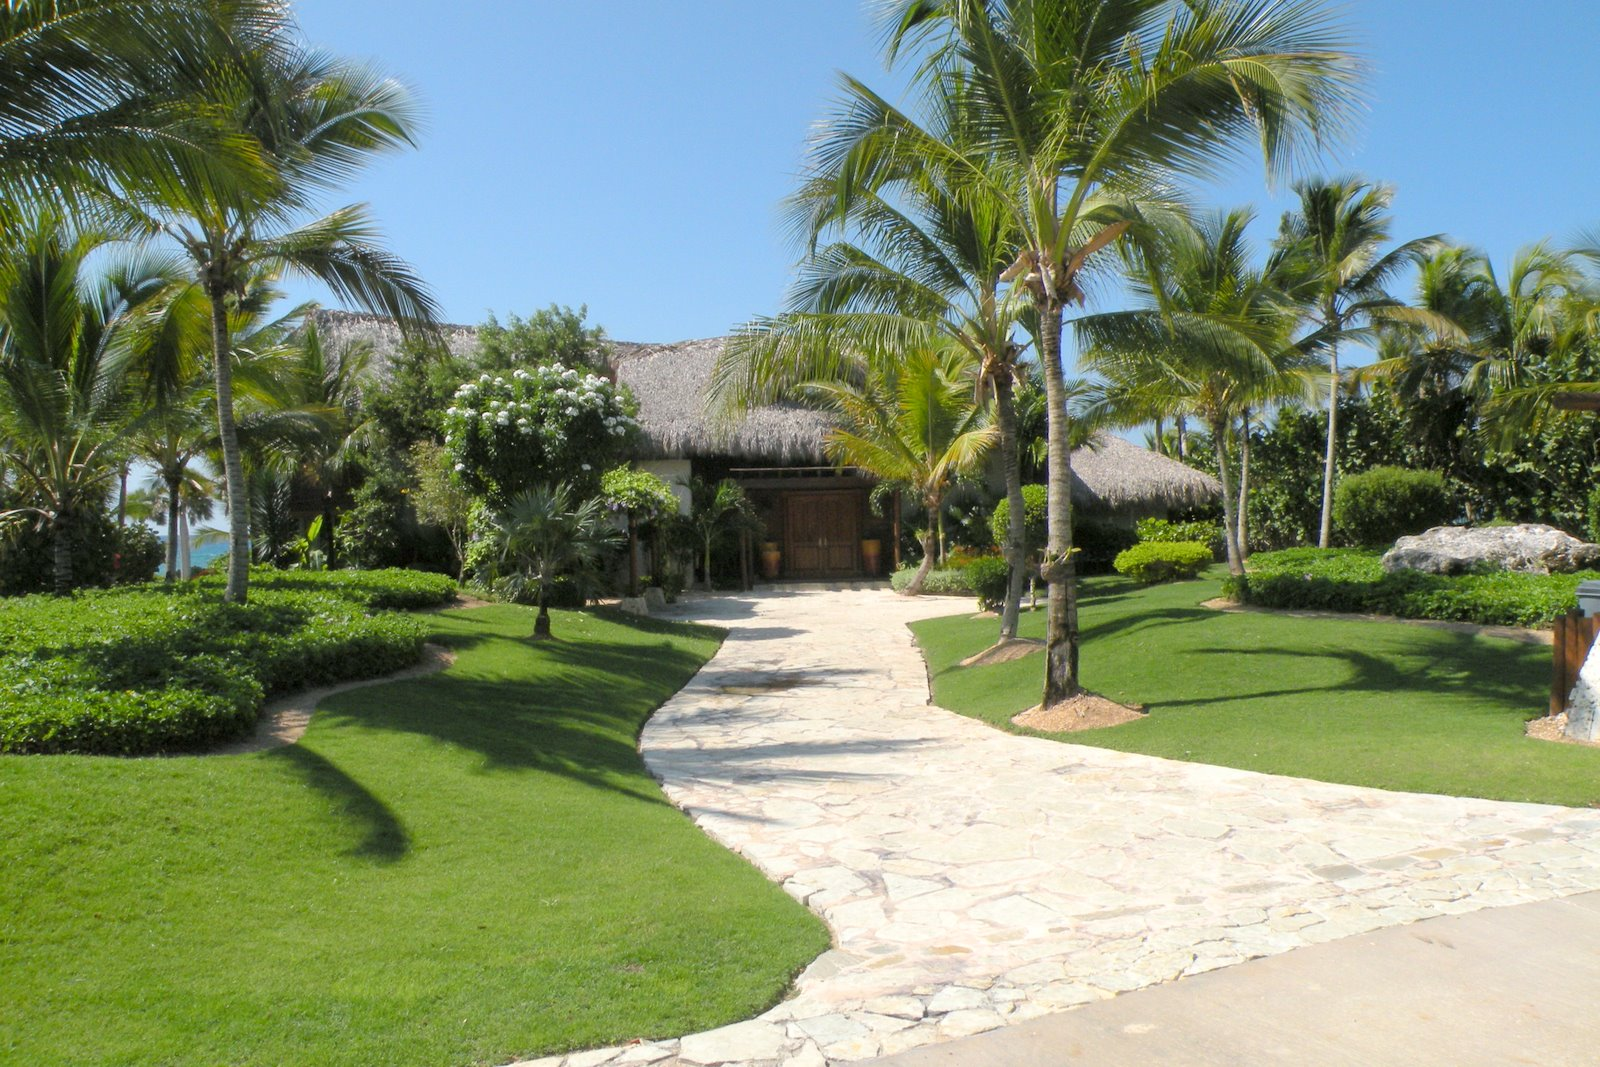 Private casa punta cana vacation rentals for Vacation rentals in punta cana